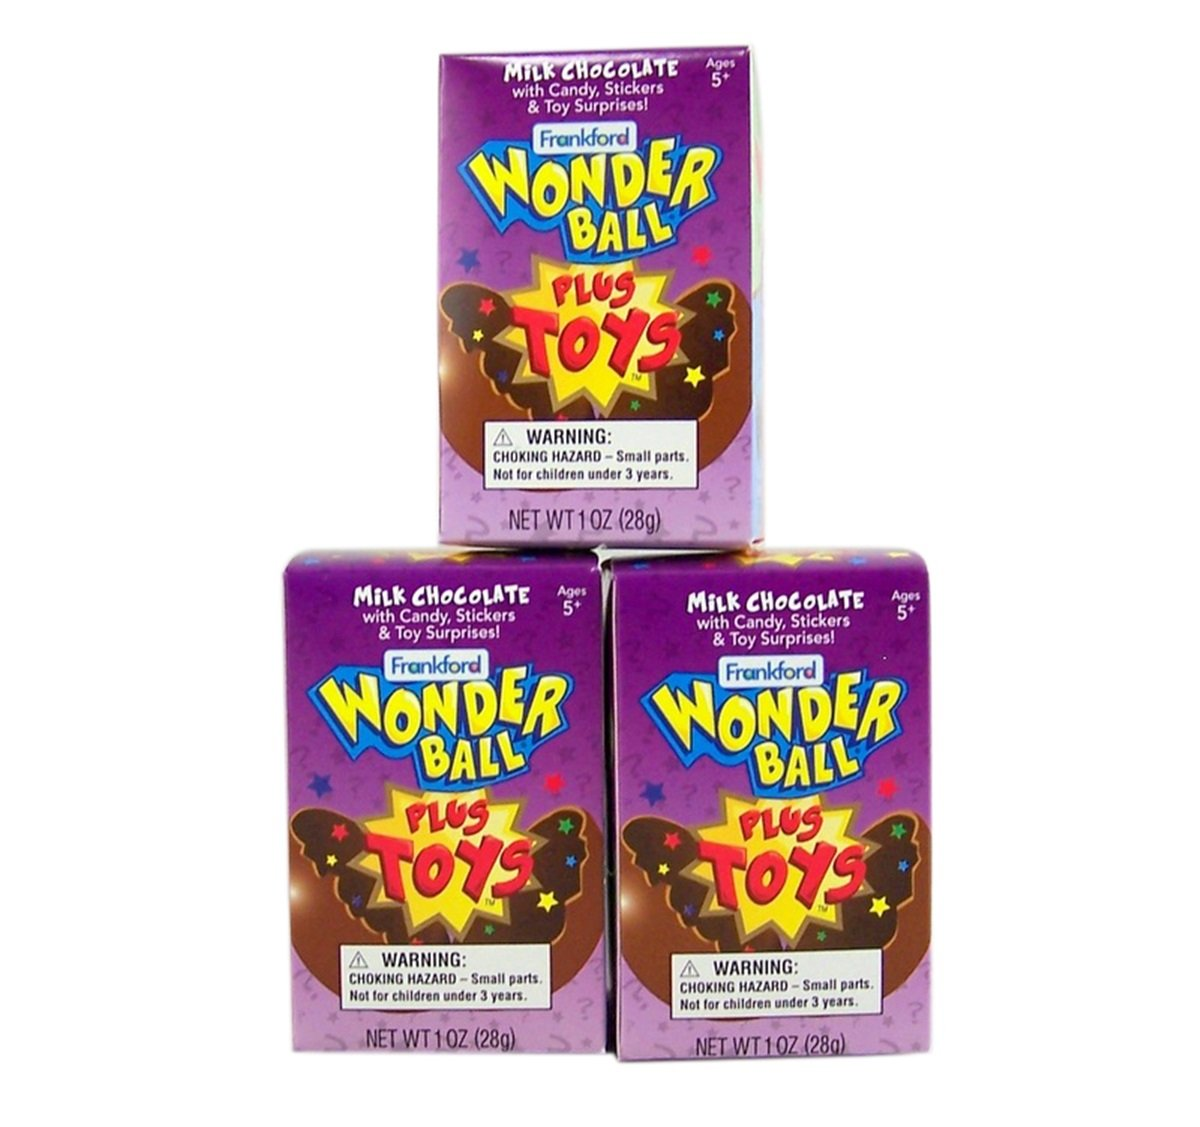 Amazon.com : Milk Chocolate Wonderball with Candy and Collectible Monster Toy Inside Box, 1 oz, Pack of 3 : Grocery & Gourmet Food